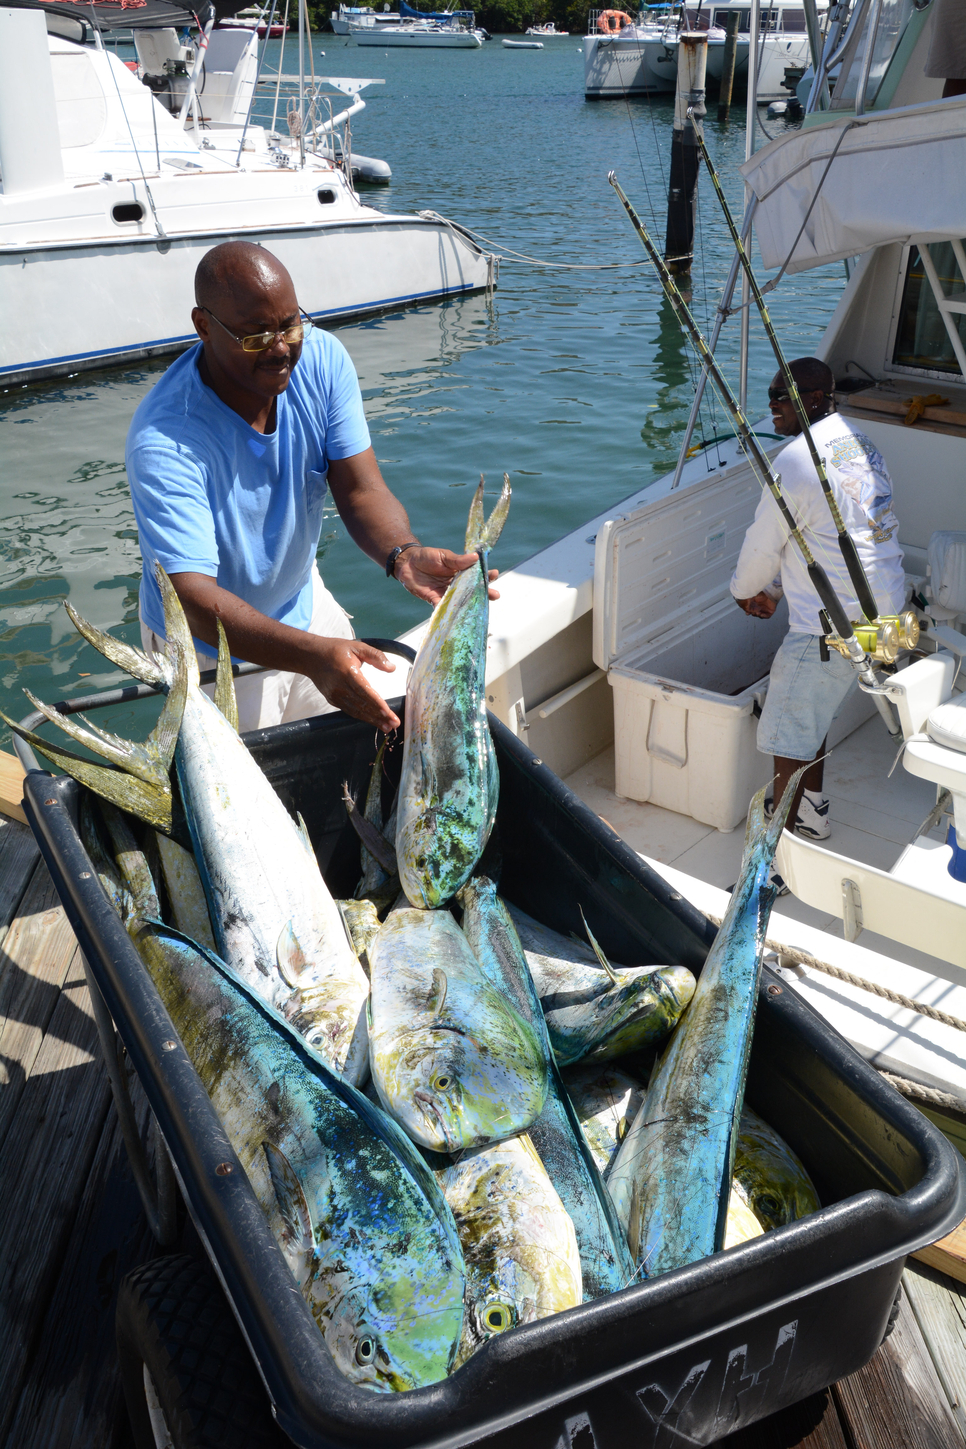 Virgin islands game fishing club 39 s 21st annual dolphin for Virgin islands fishing